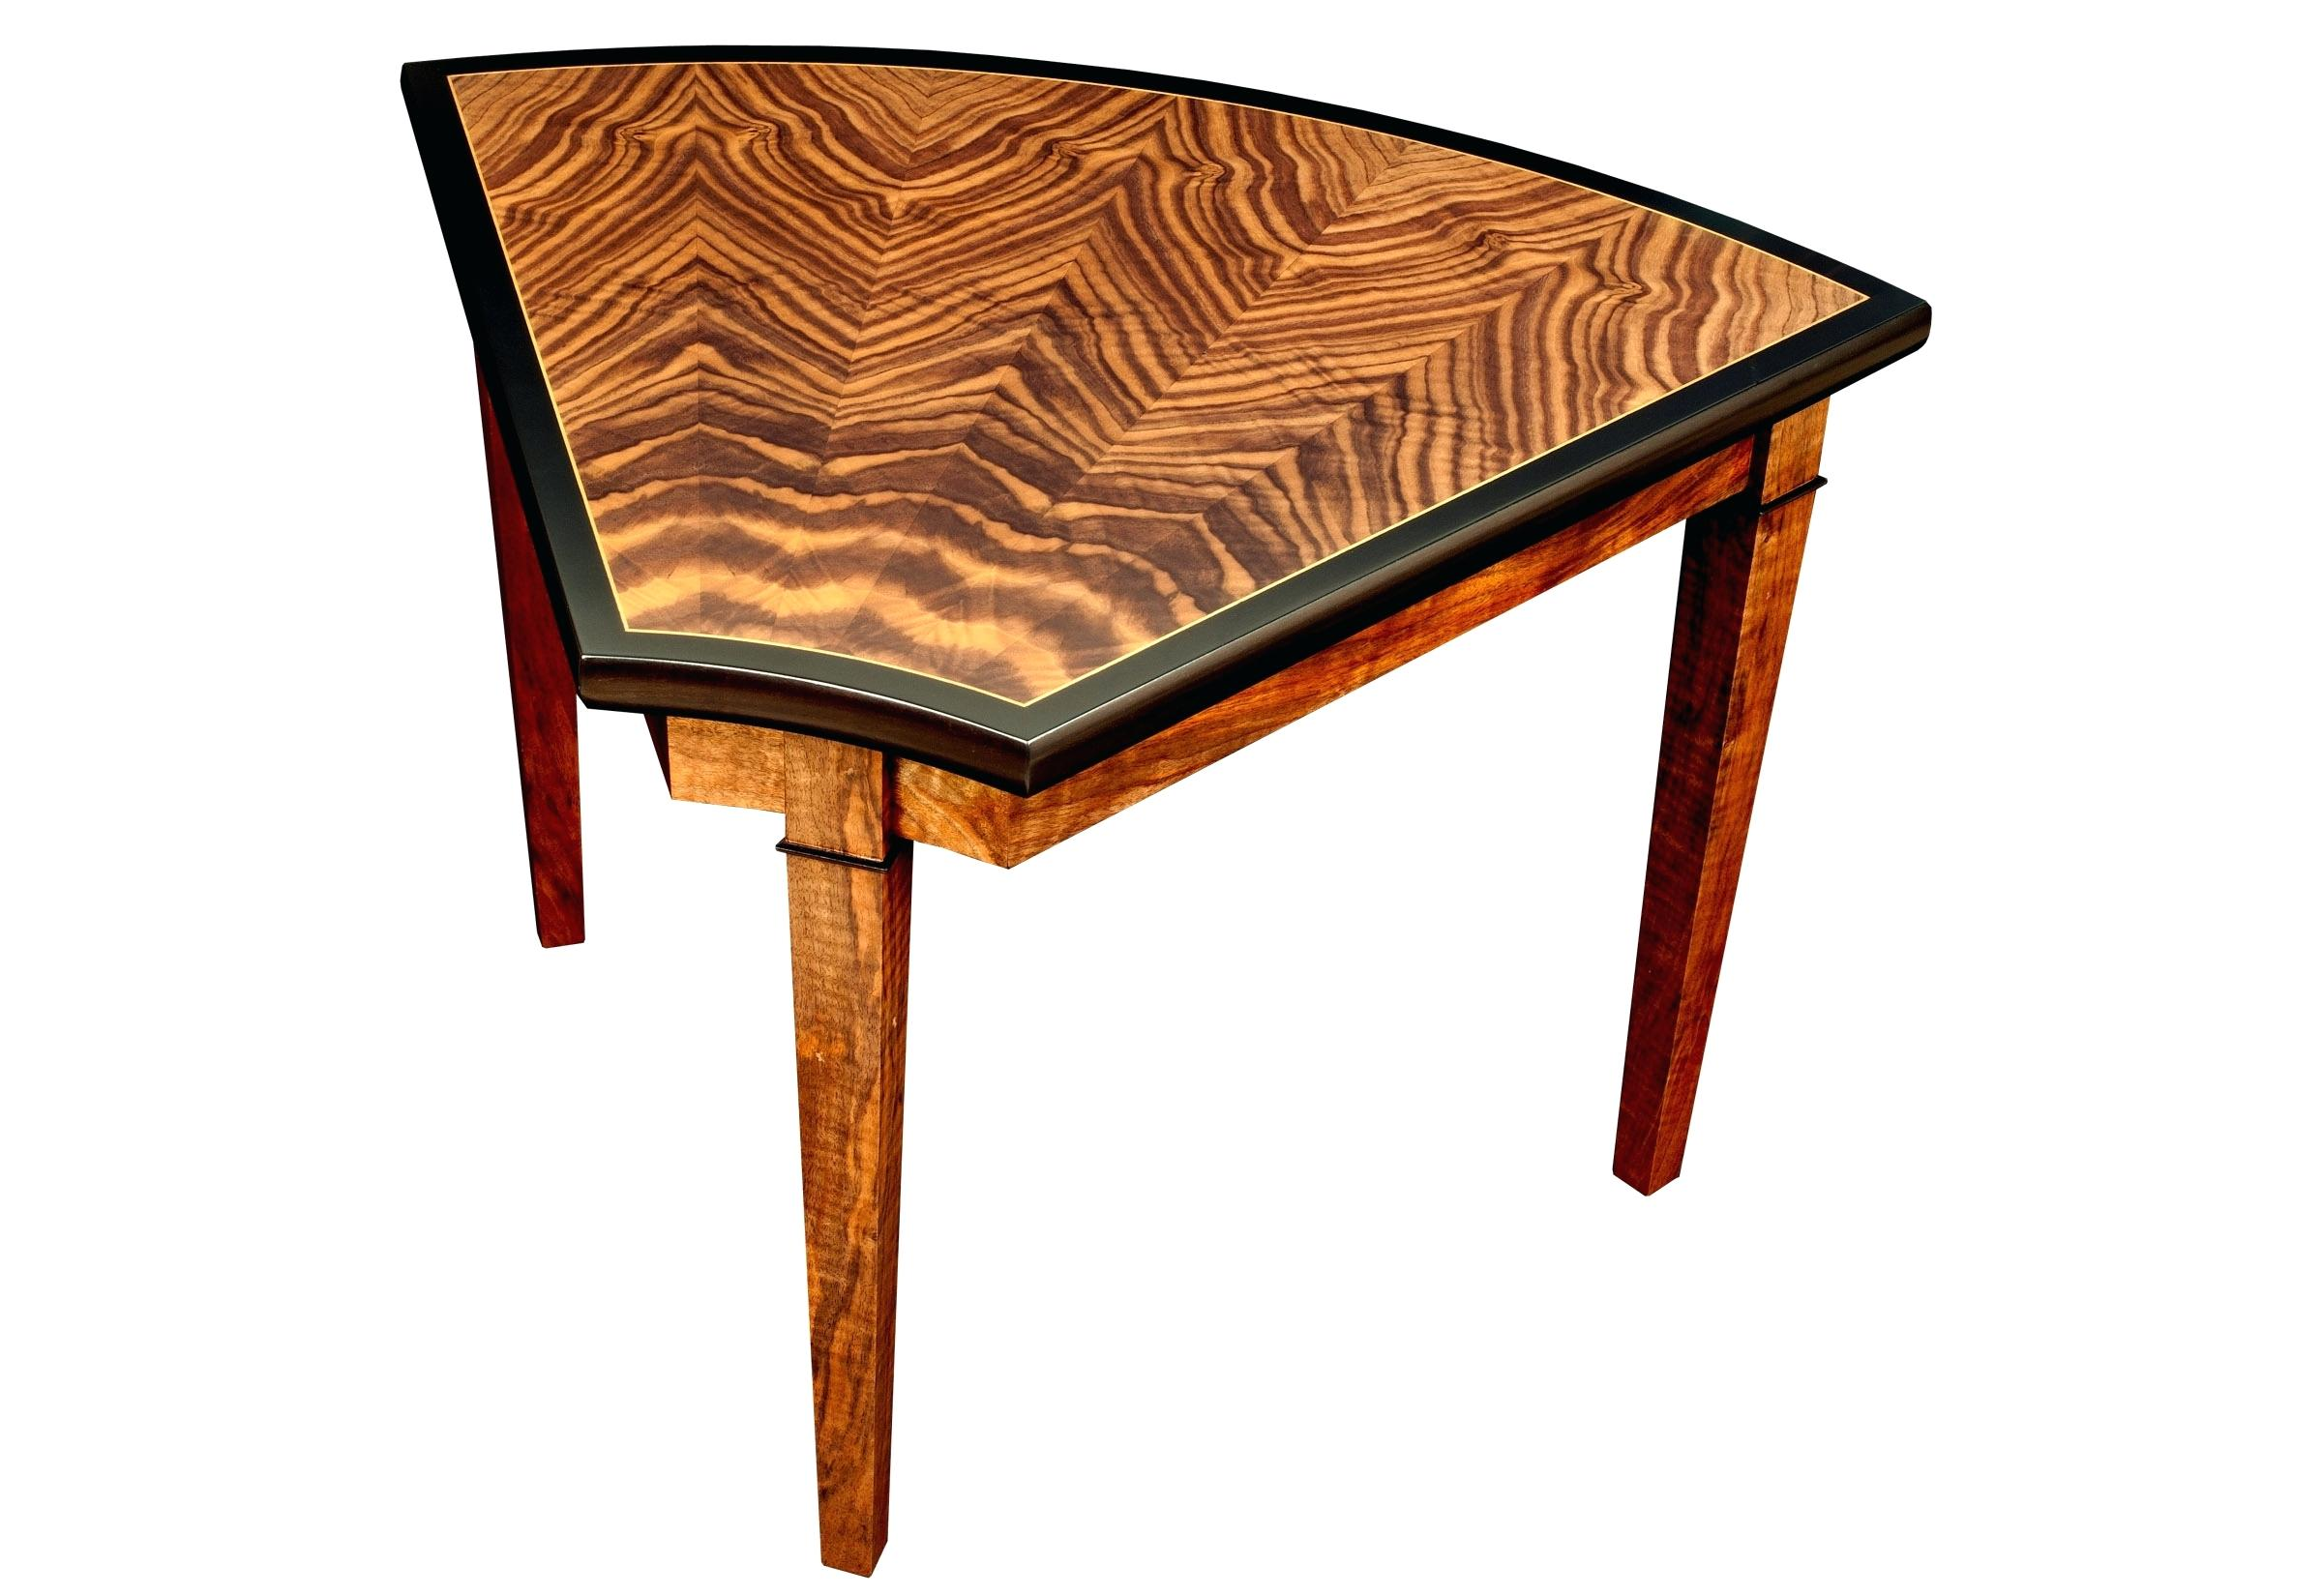 wedge shaped end tables kcscienceinc accent table placemats for round side marble and wood ikea file box coffee antique drop leaf styles oval plans clearance set inch nightstand